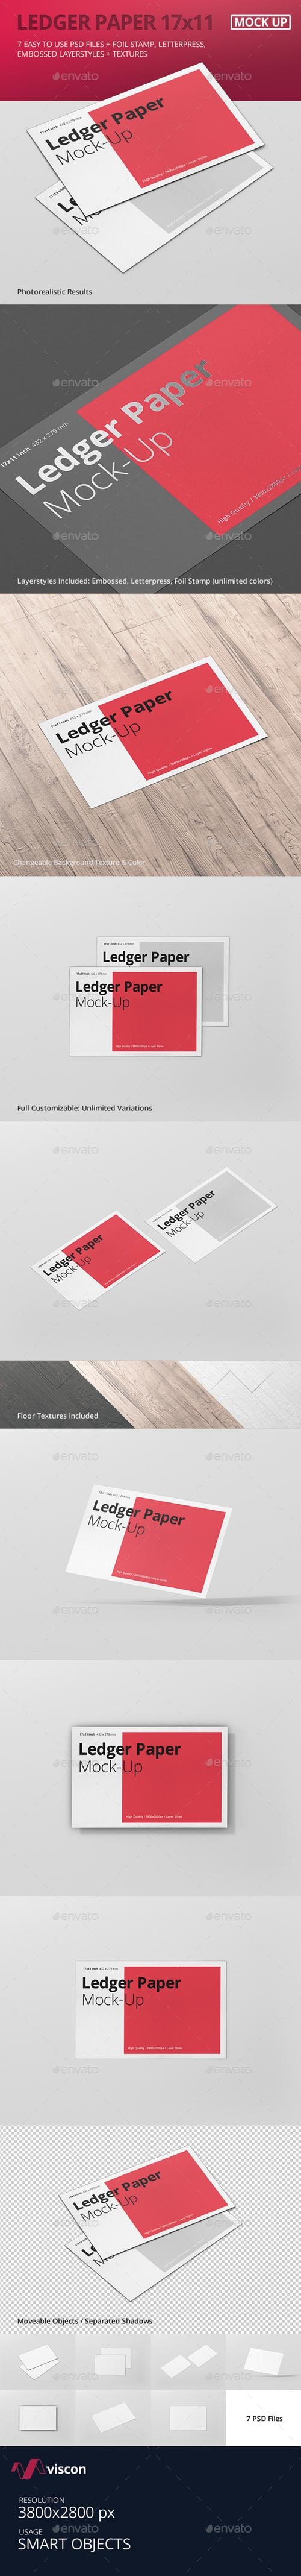 Ledger Paper Mock-Up - 17x11 17566531